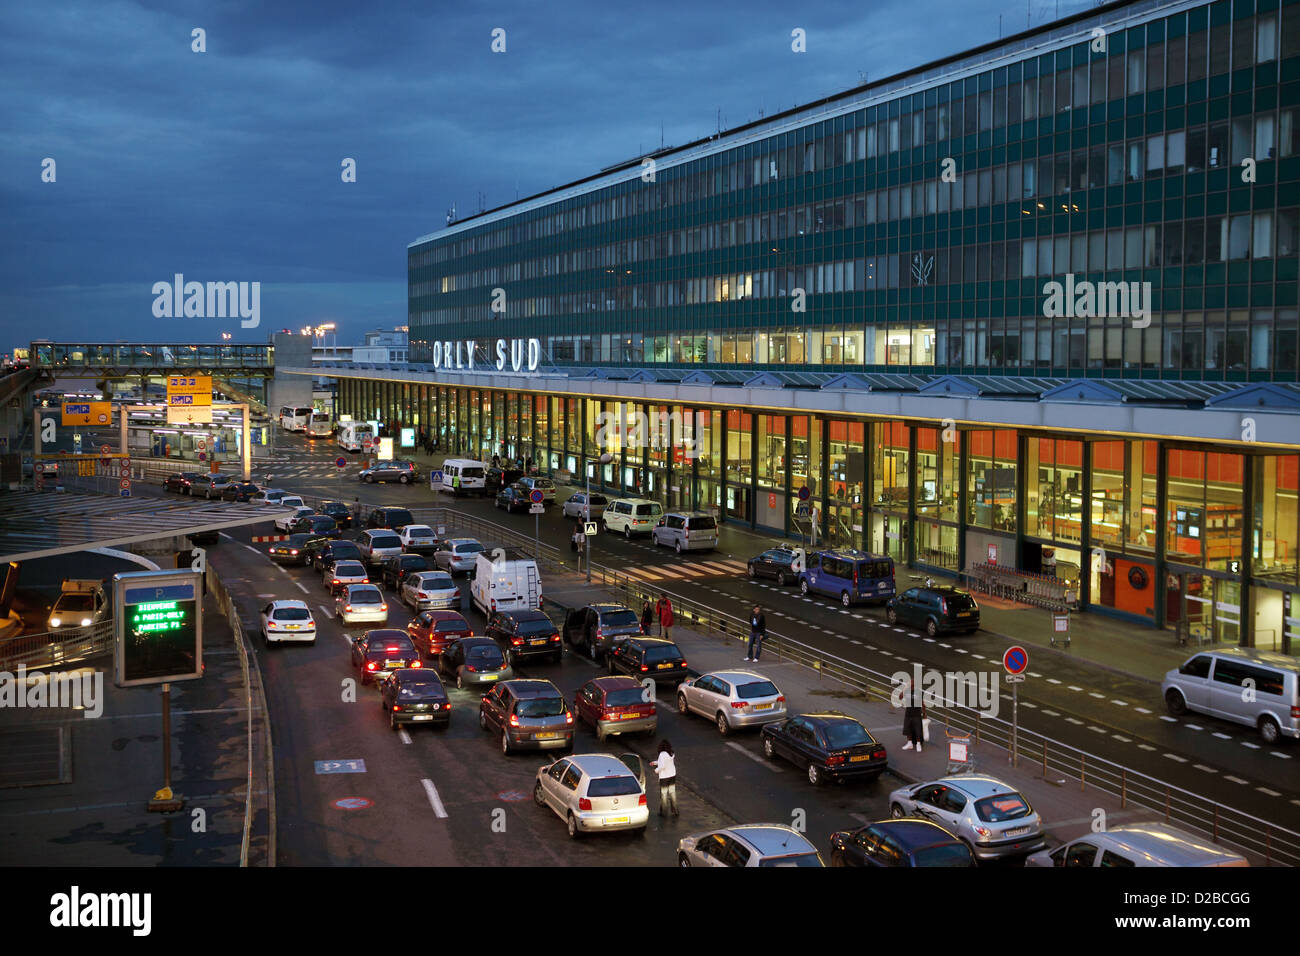 paris france orly sud airport terminal at dusk stock photo 53111760 alamy. Black Bedroom Furniture Sets. Home Design Ideas